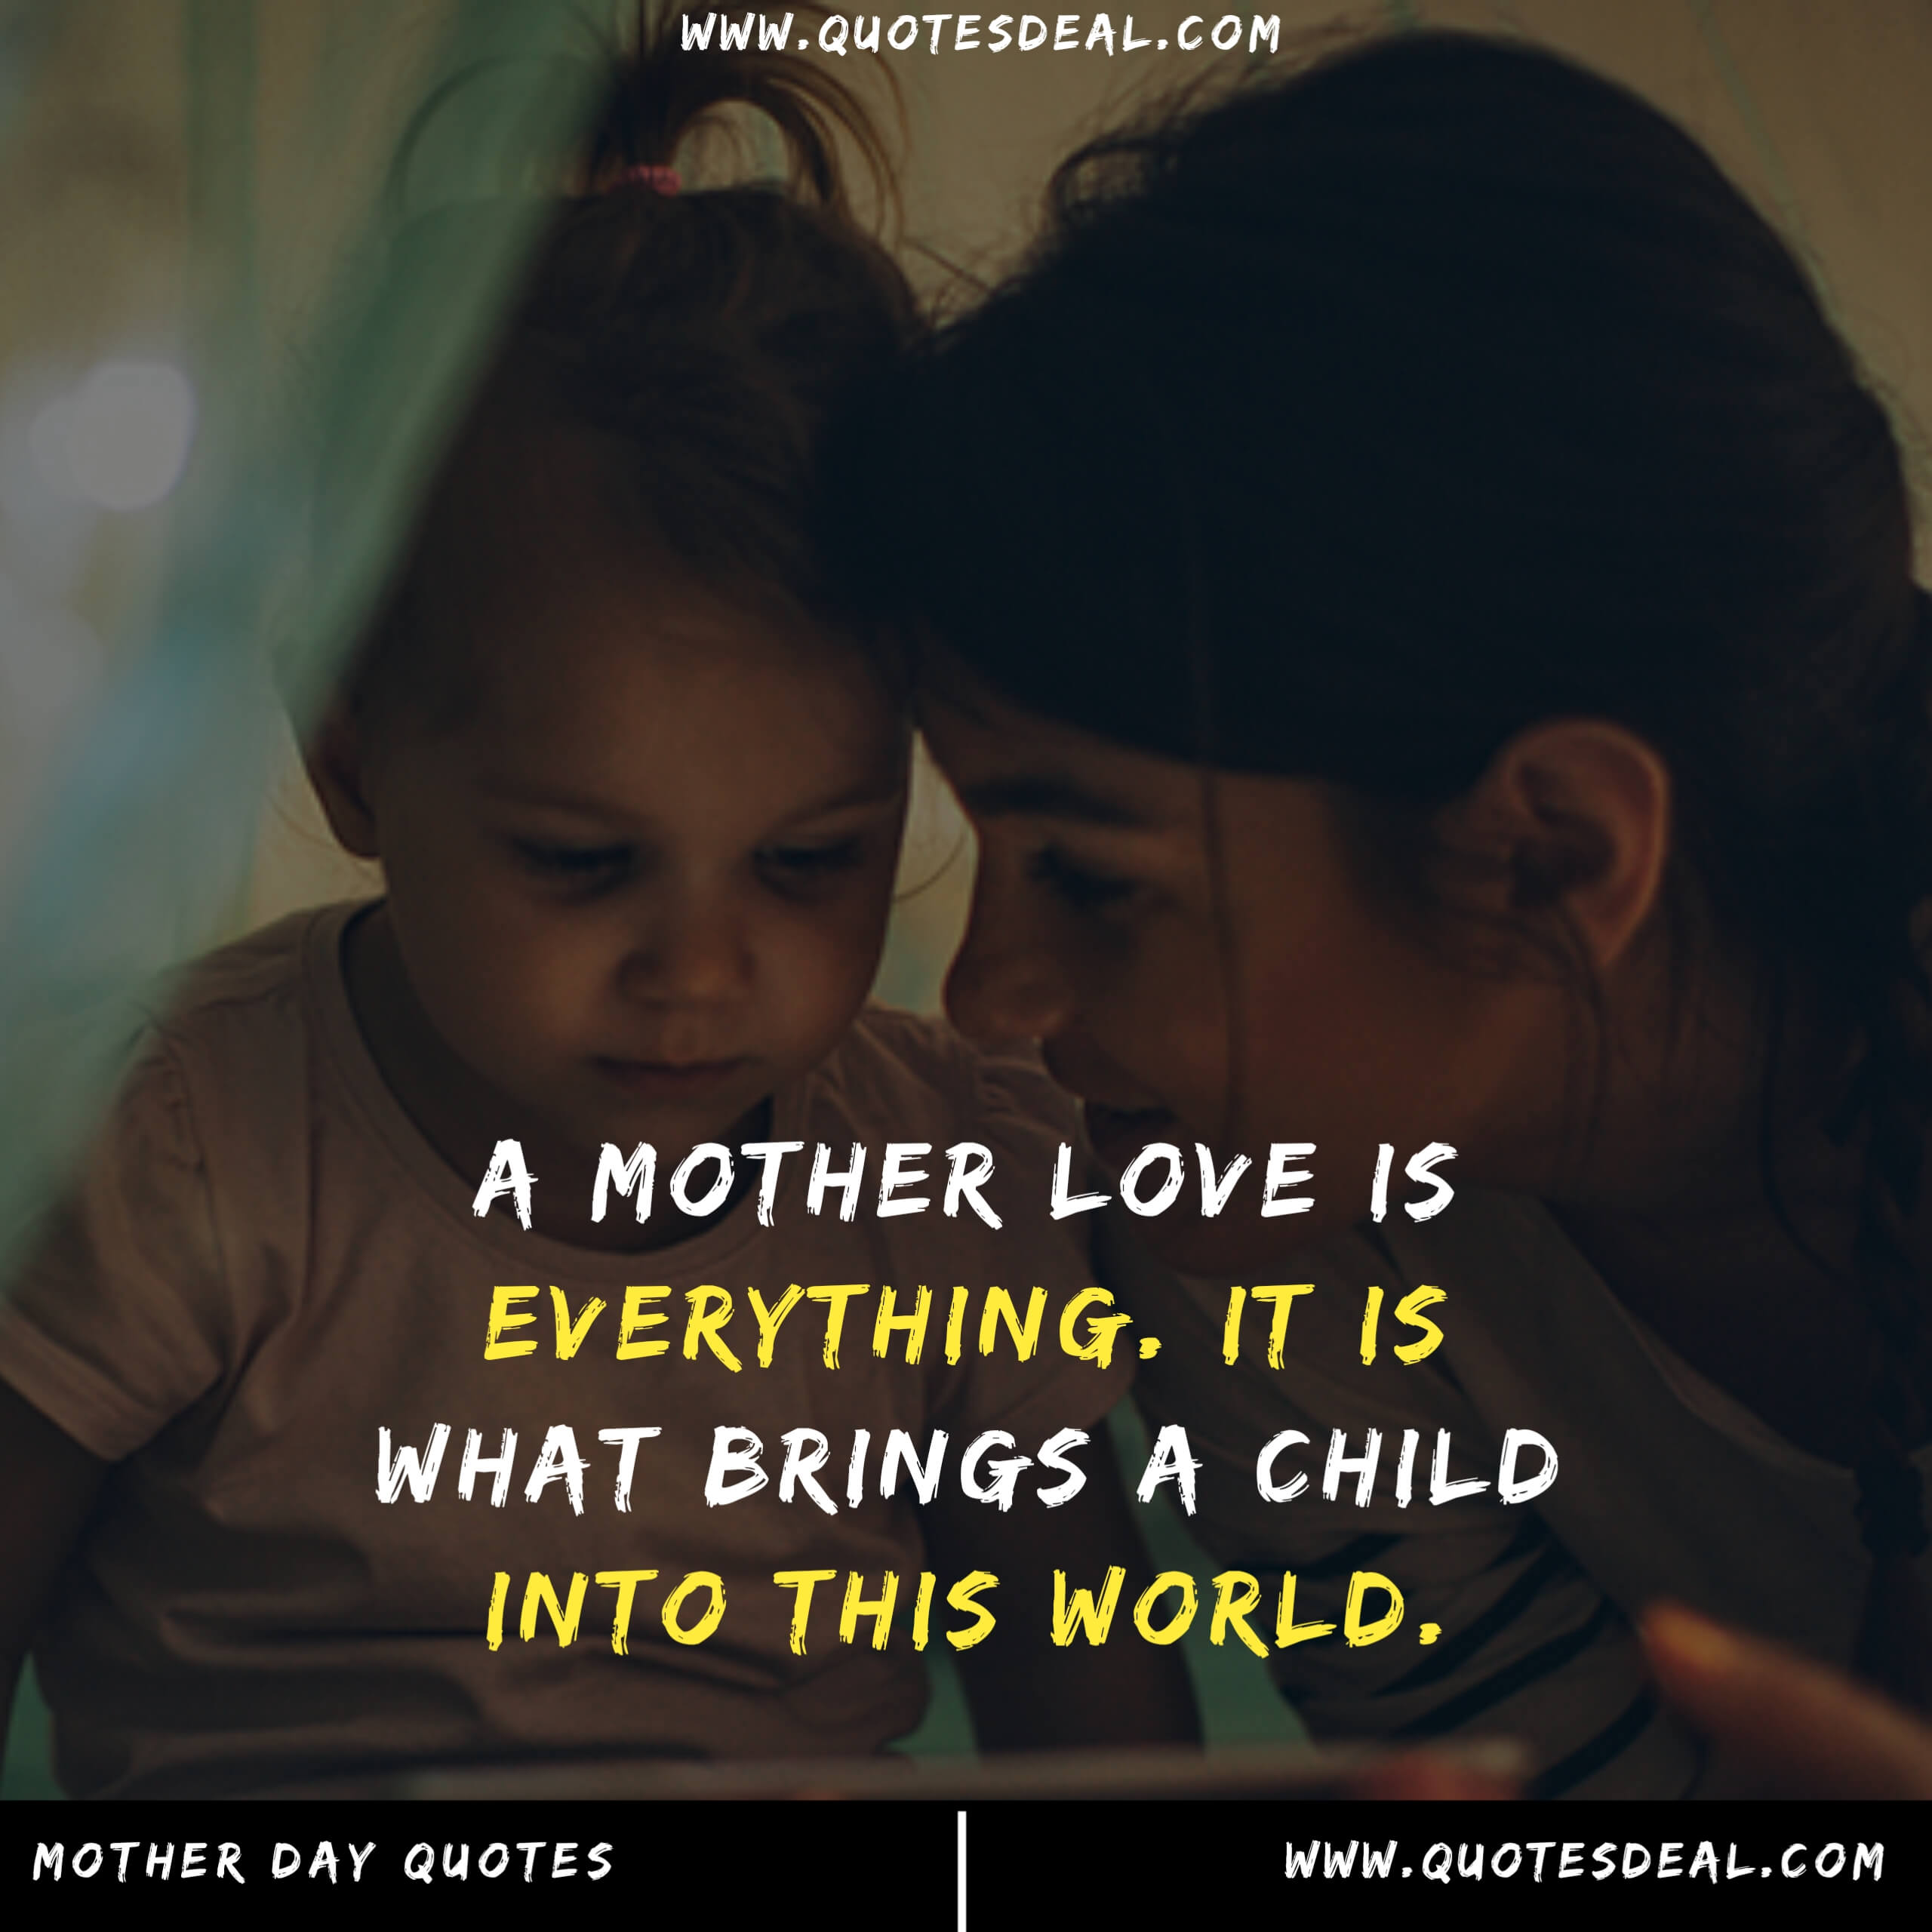 A mother love is everything